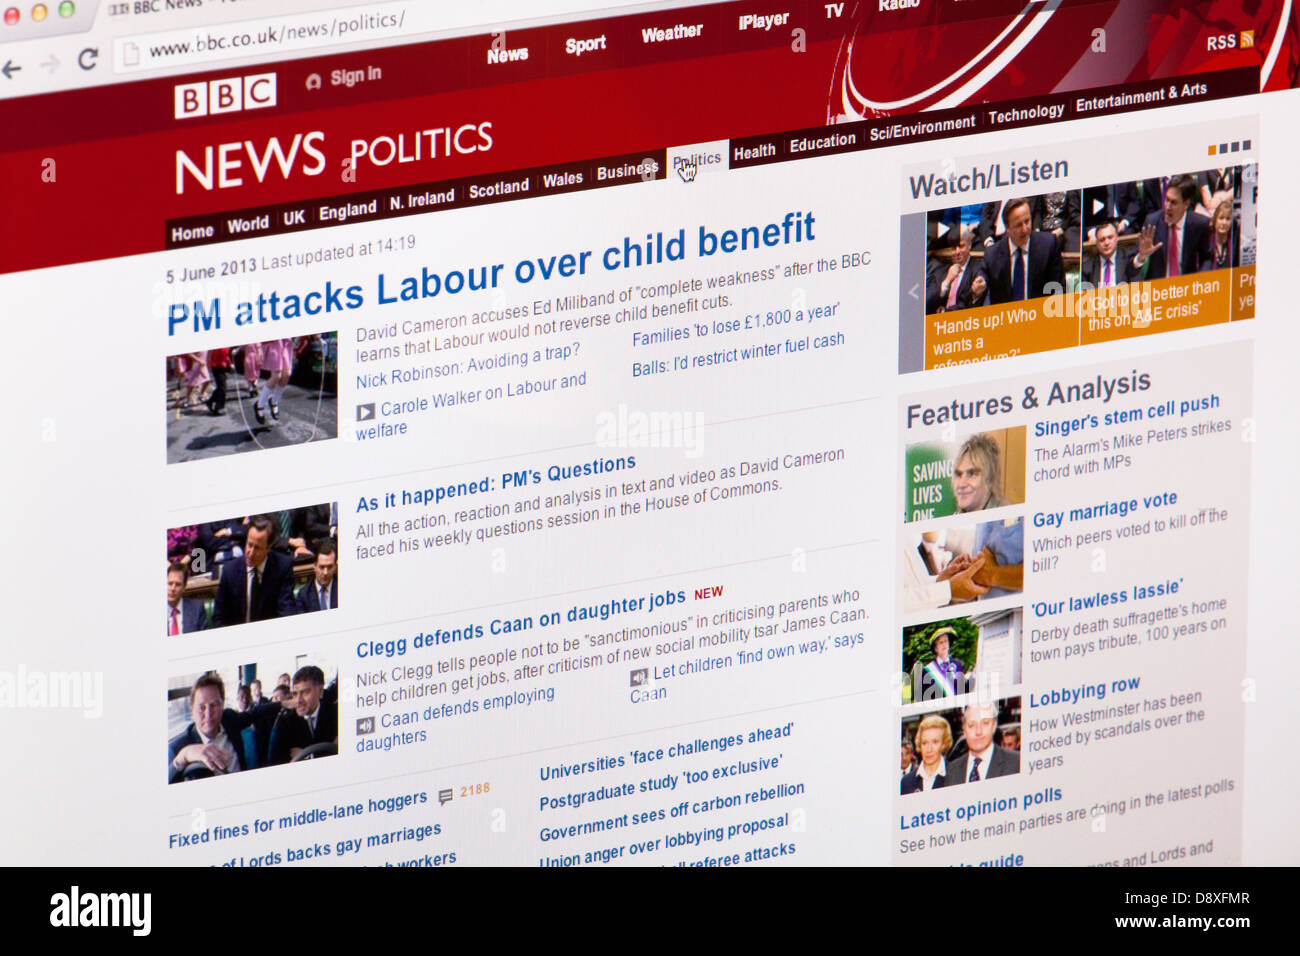 BBC News Politics Home page site Web ou une page web sur un écran d'ordinateur portable ou un écran Photo Stock